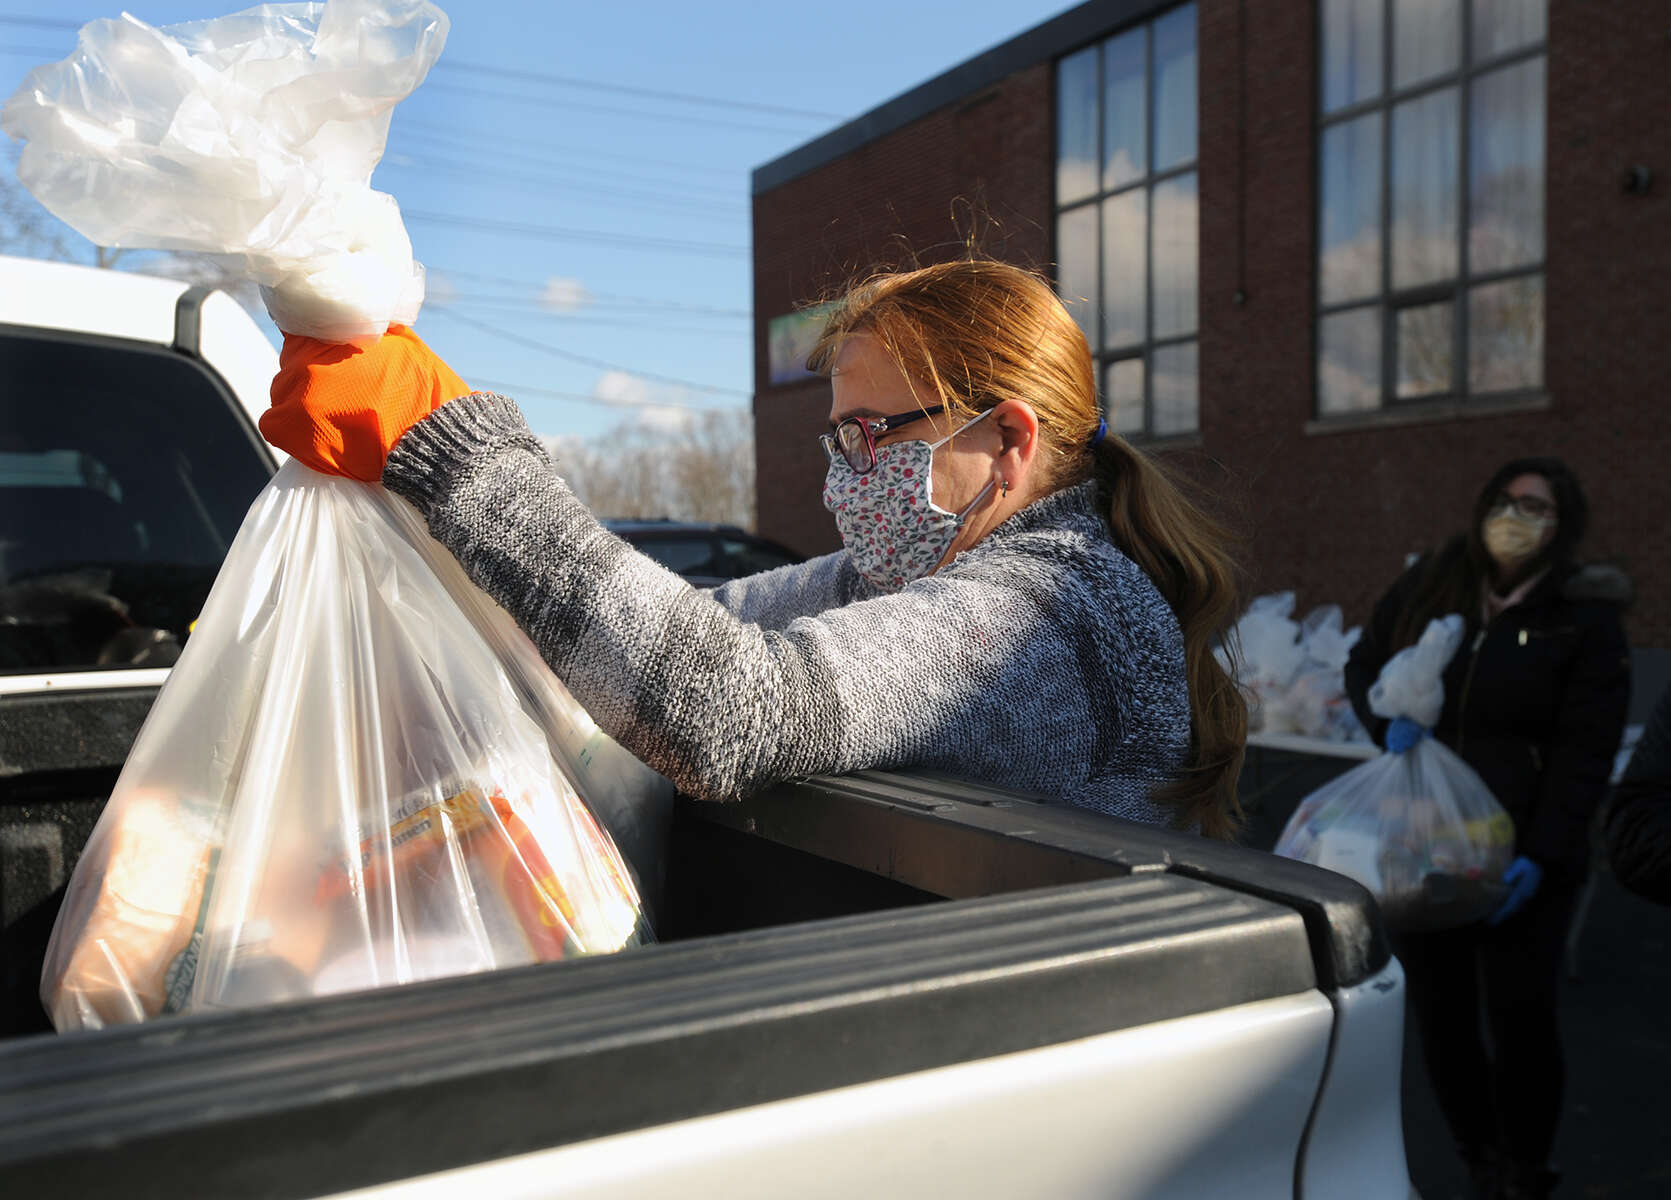 4/17/20-- FRAMINGHAM-- At the Brazilian American Center food distribution center on Waverly Street, Elaine Goncalves puts food into the truck of a client.  The hours are 9 a.m. to 12 p.m. Wednesday and Fridays. [Daily News and Wicked Local Staff Photo/Art Illman]